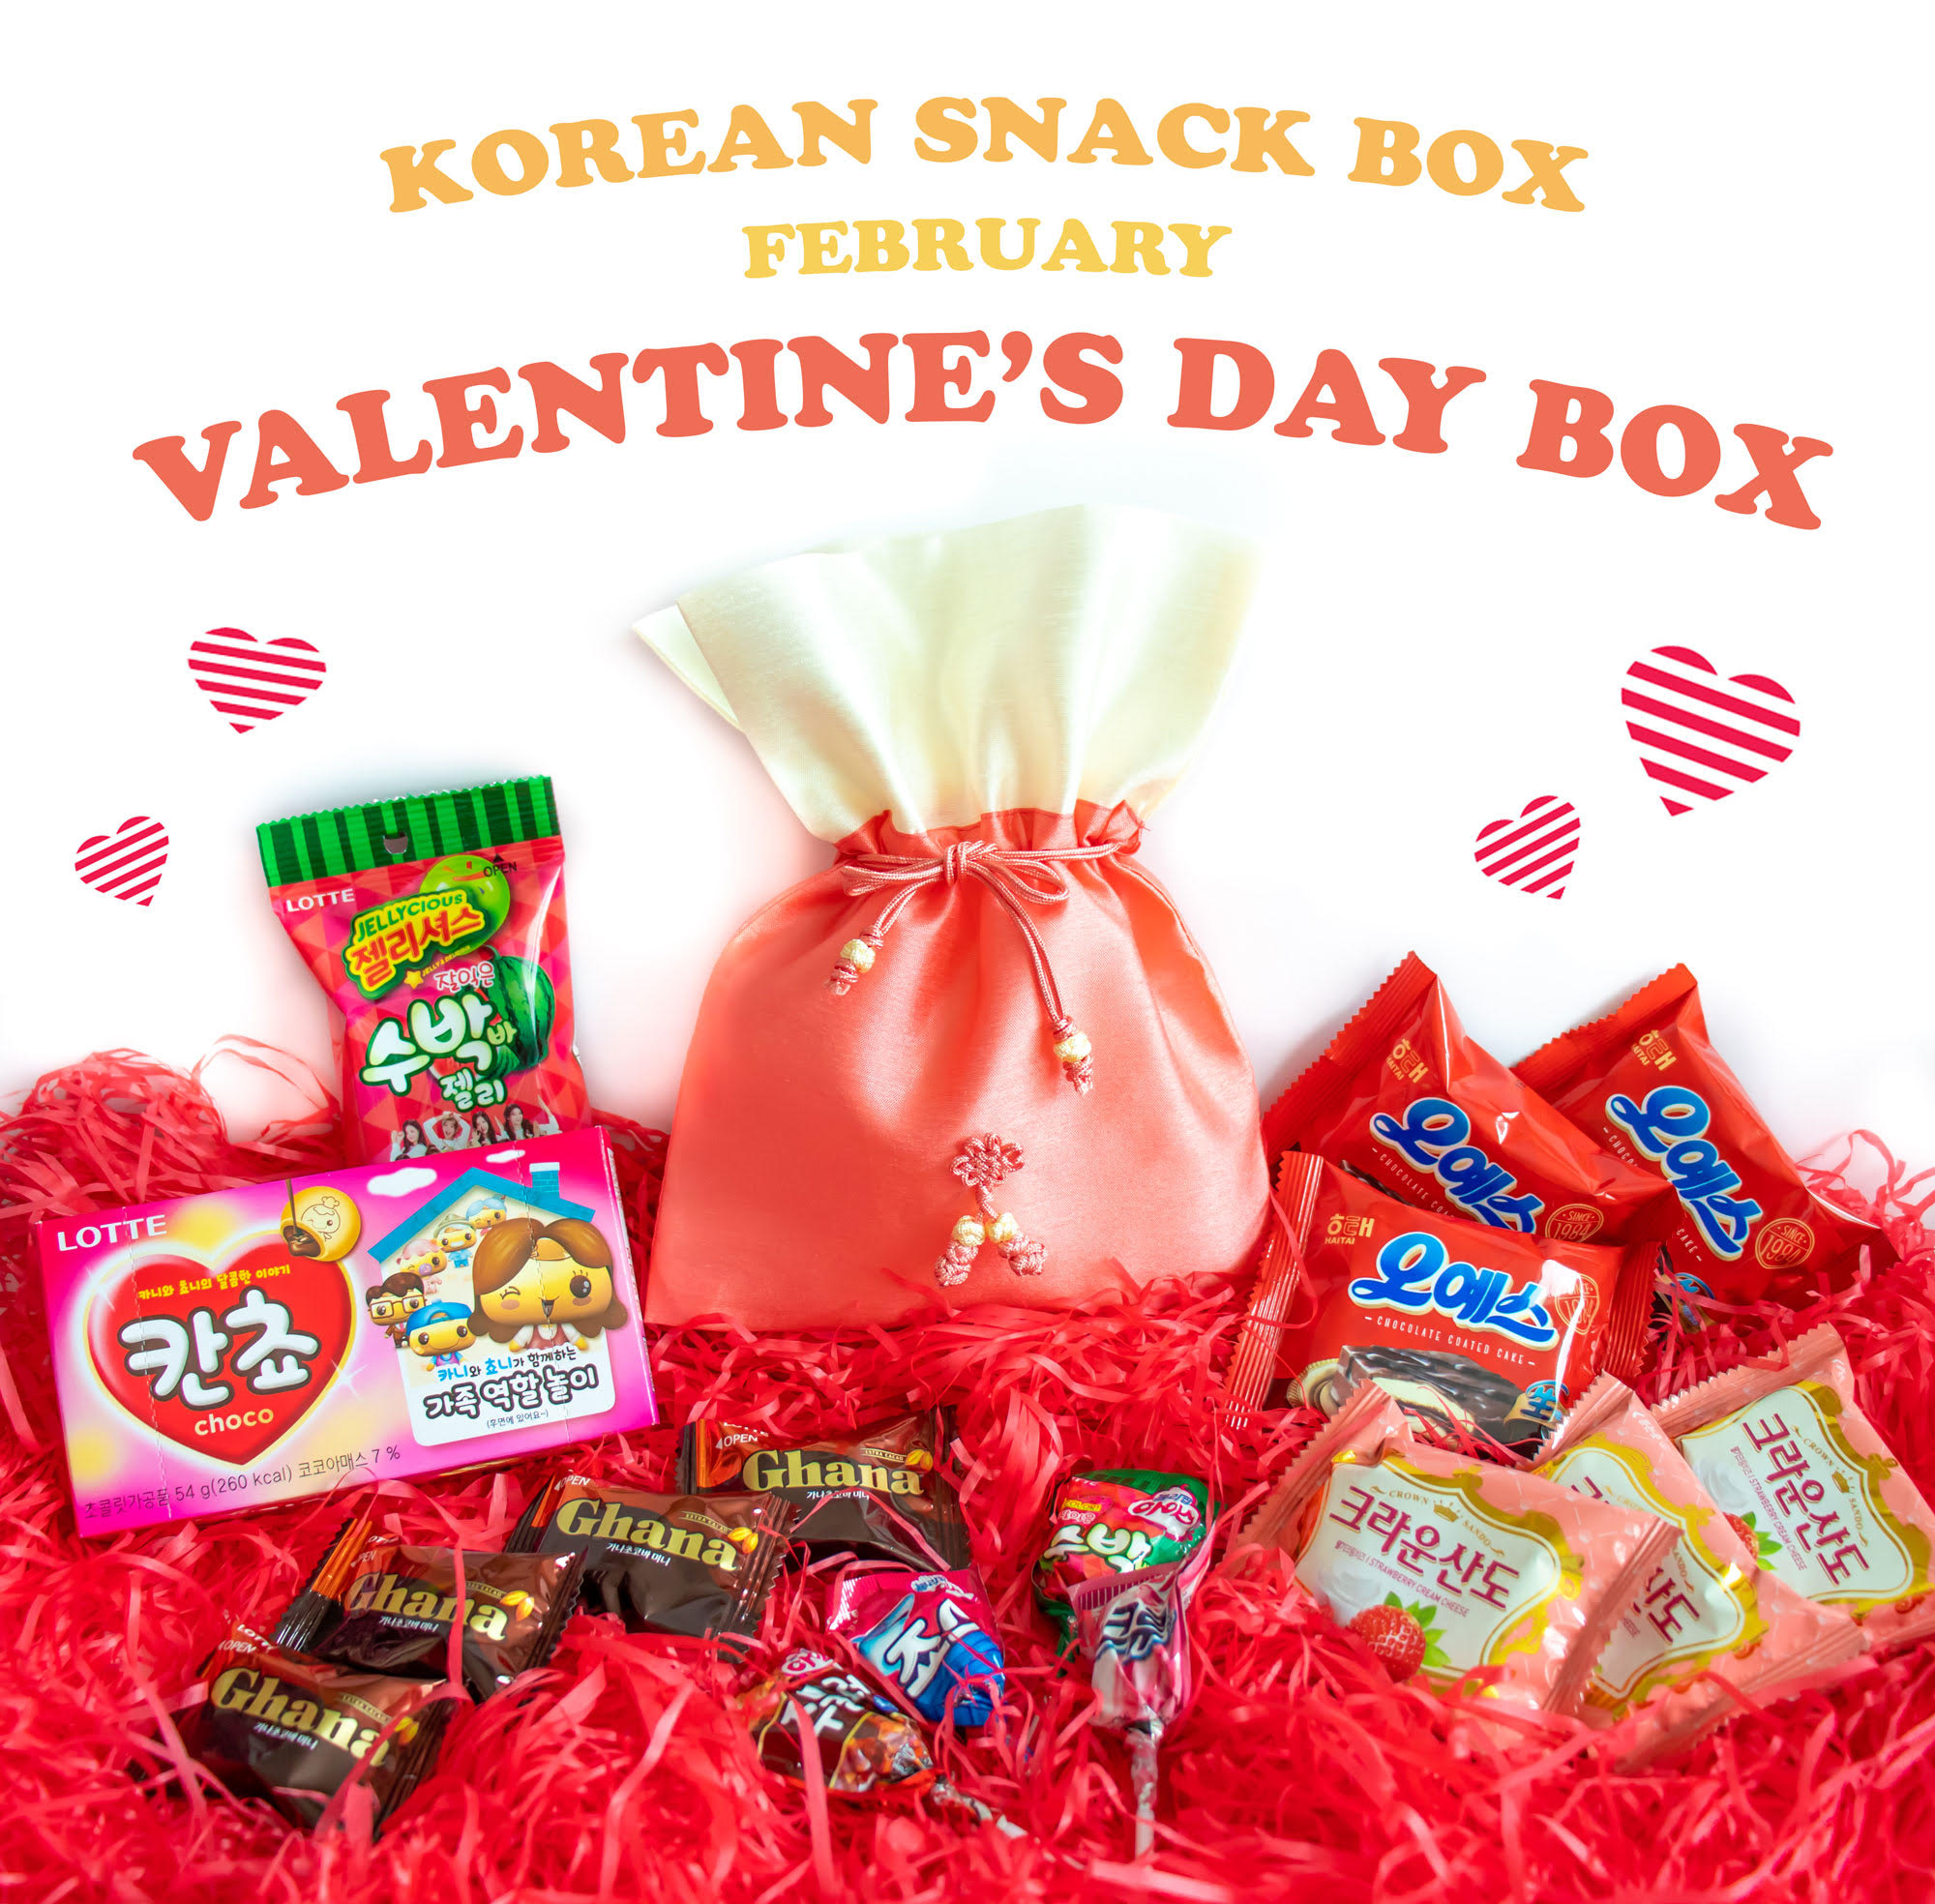 Korean Snack Box February 2019 FULL Spoilers + Coupon!